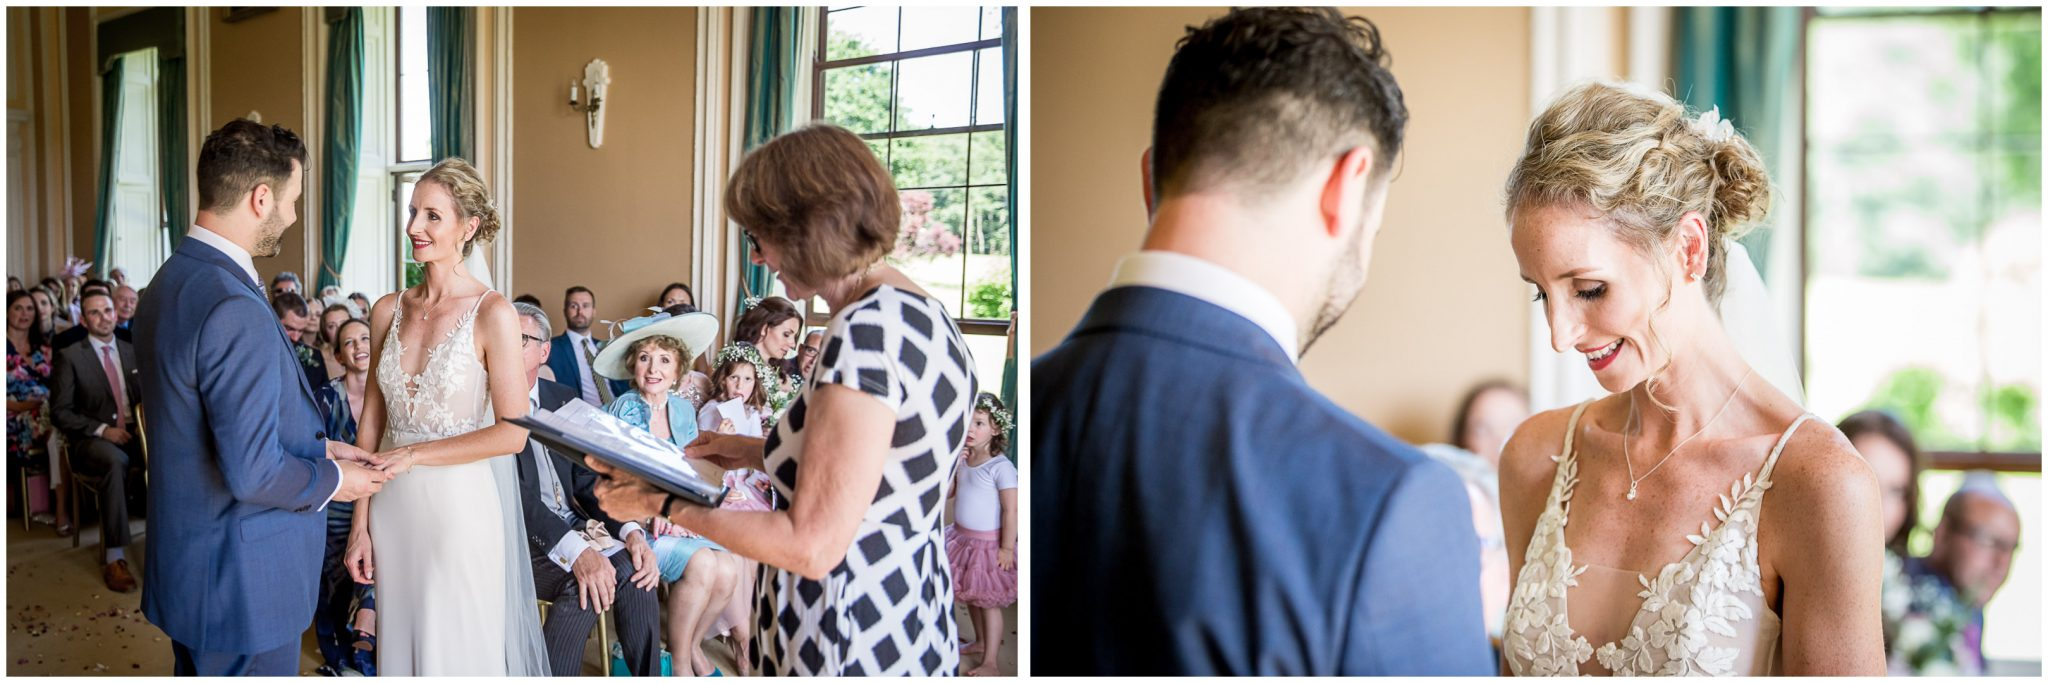 The couple make their vows and exchange rings